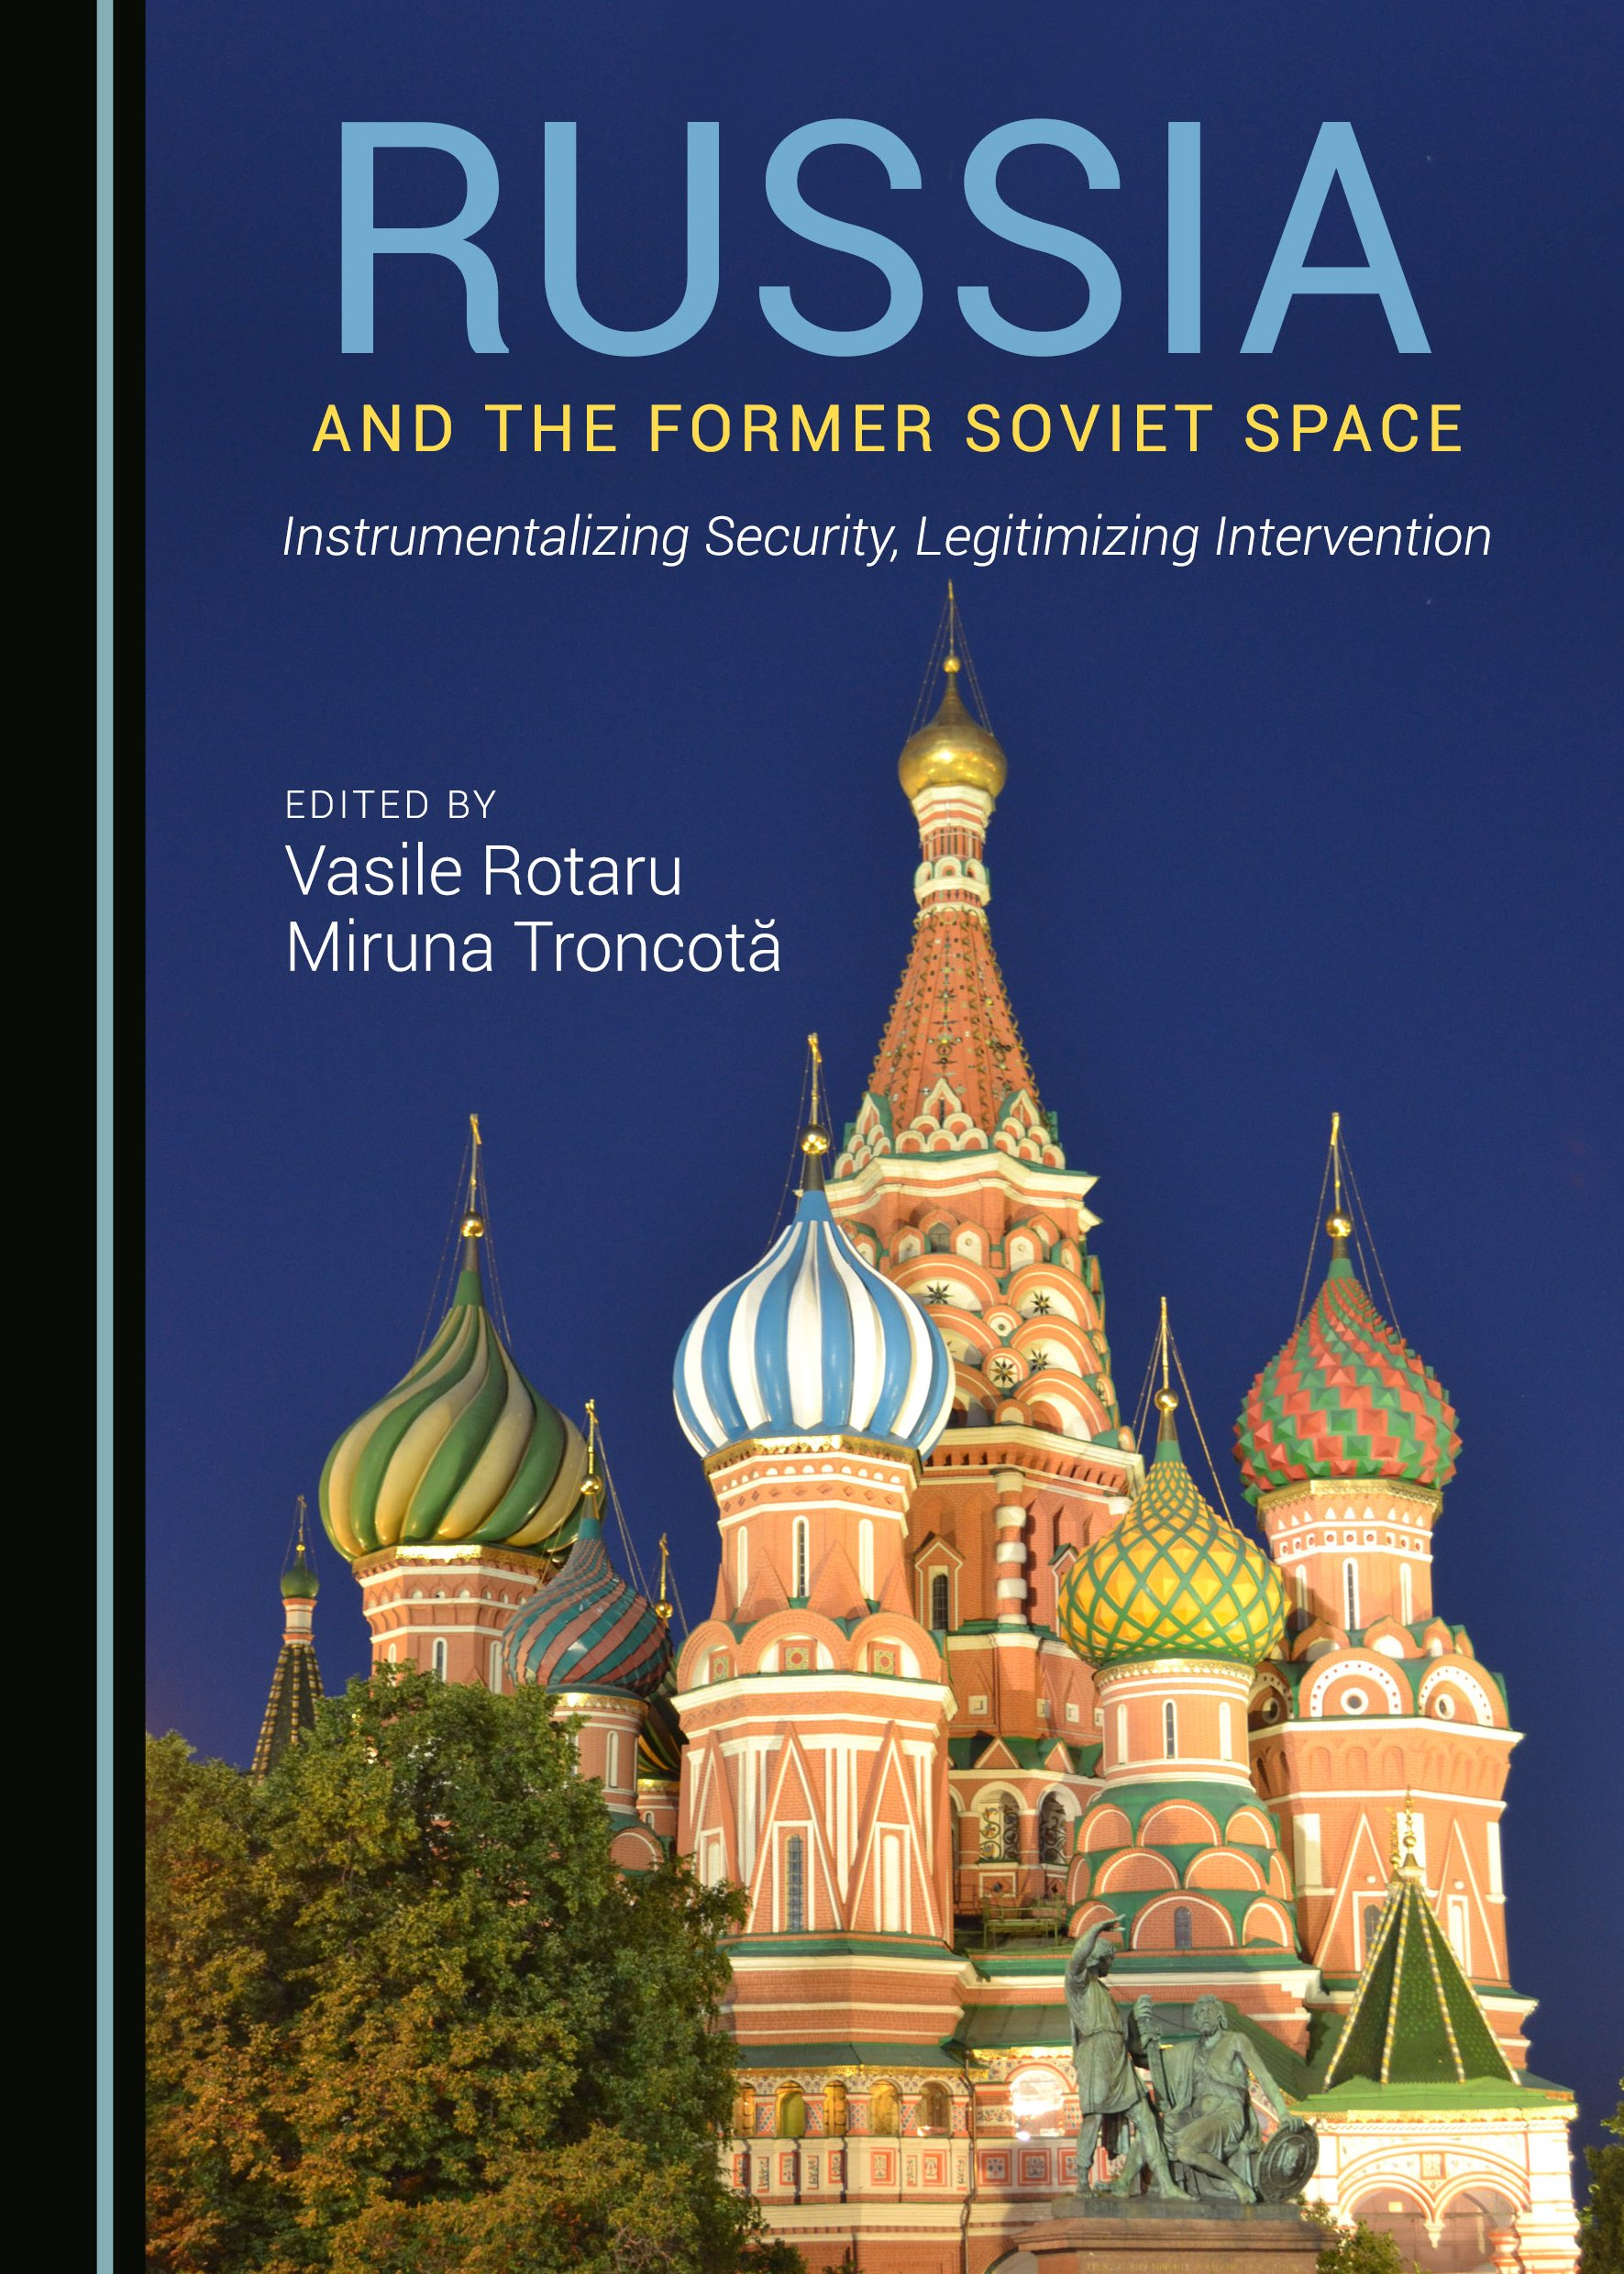 Russia and the Former Soviet Space: Instrumentalizing Security, Legitimizing Intervention